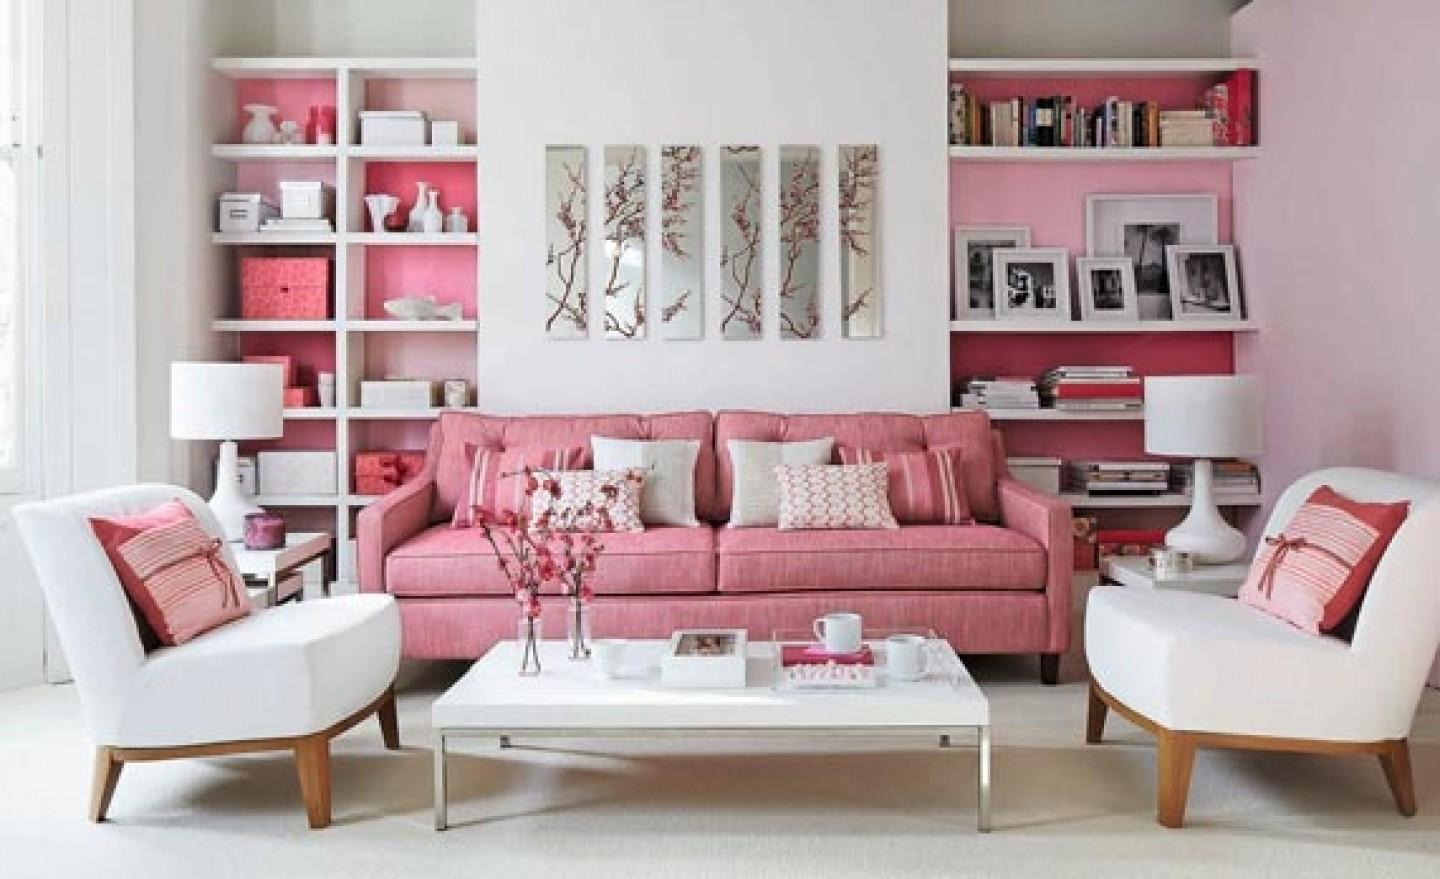 Modern Pink Living Room Interior Decorating Designs